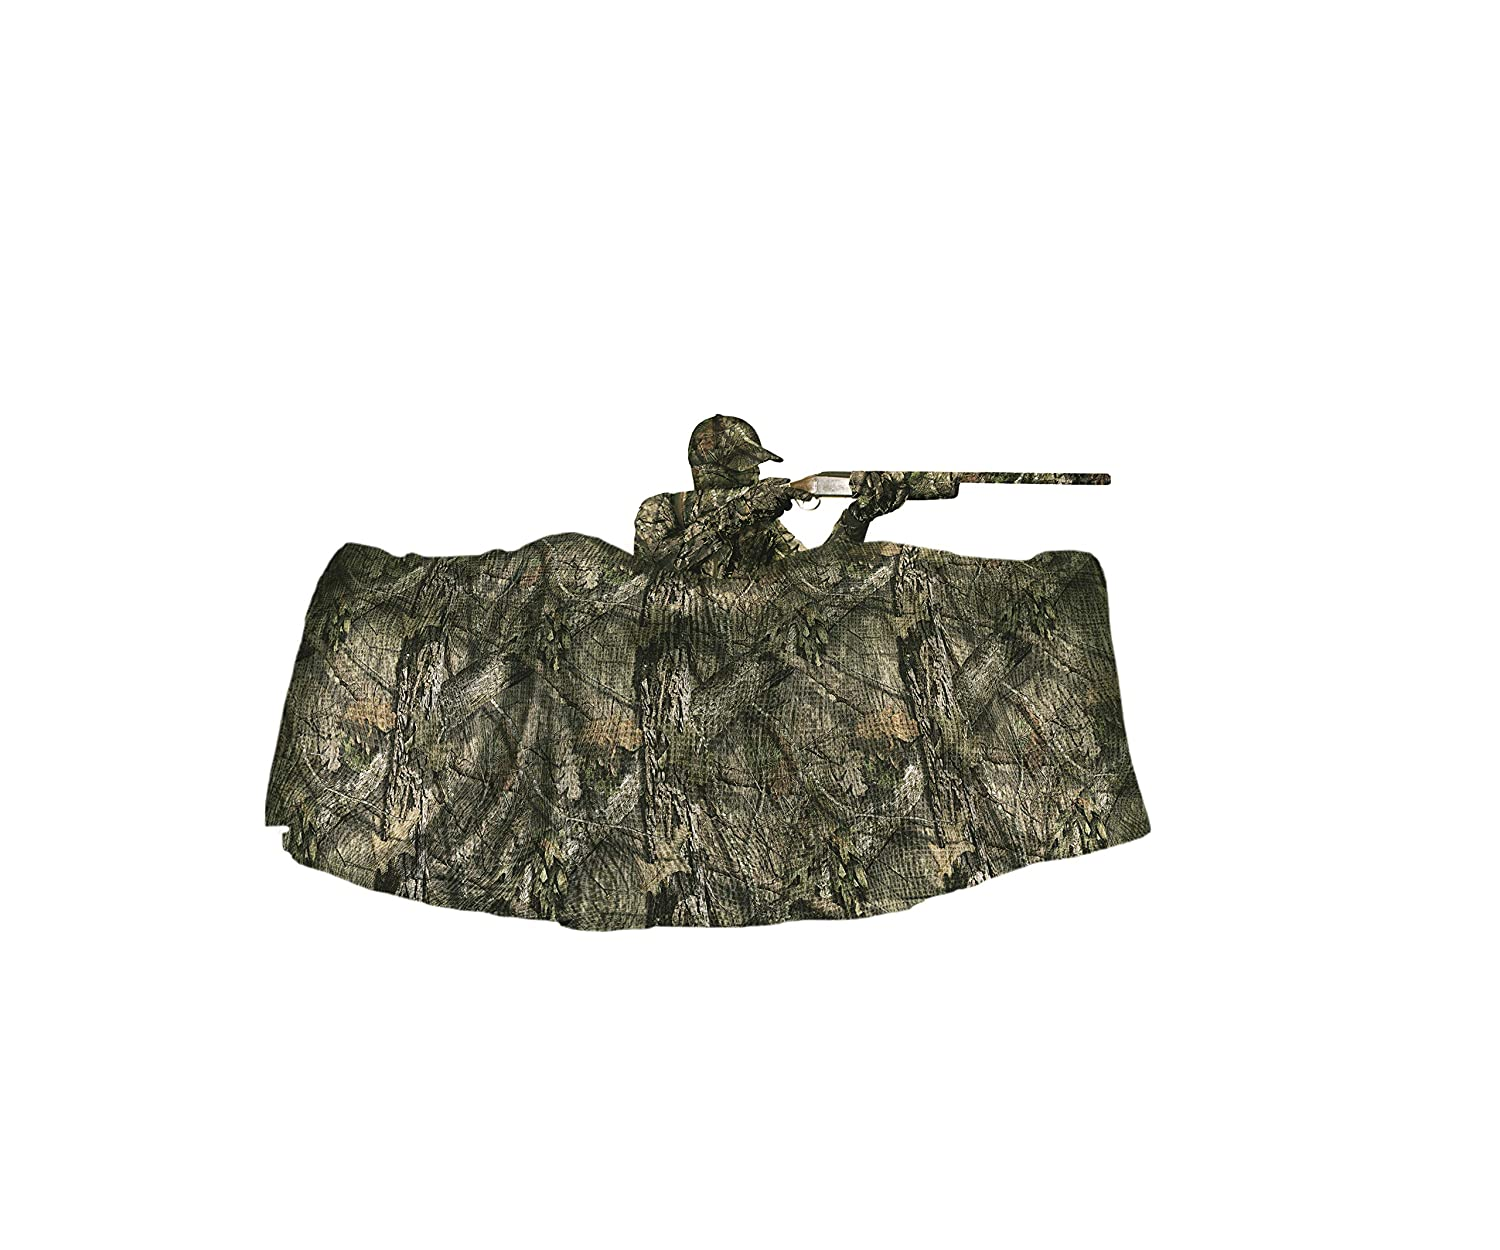 ae885e61 Amazon.com : Allen Company Camo Burlap Blind Material for Ground Tree  Stands and Duck Blinds, Mossy Oak Break-Up Country, 54